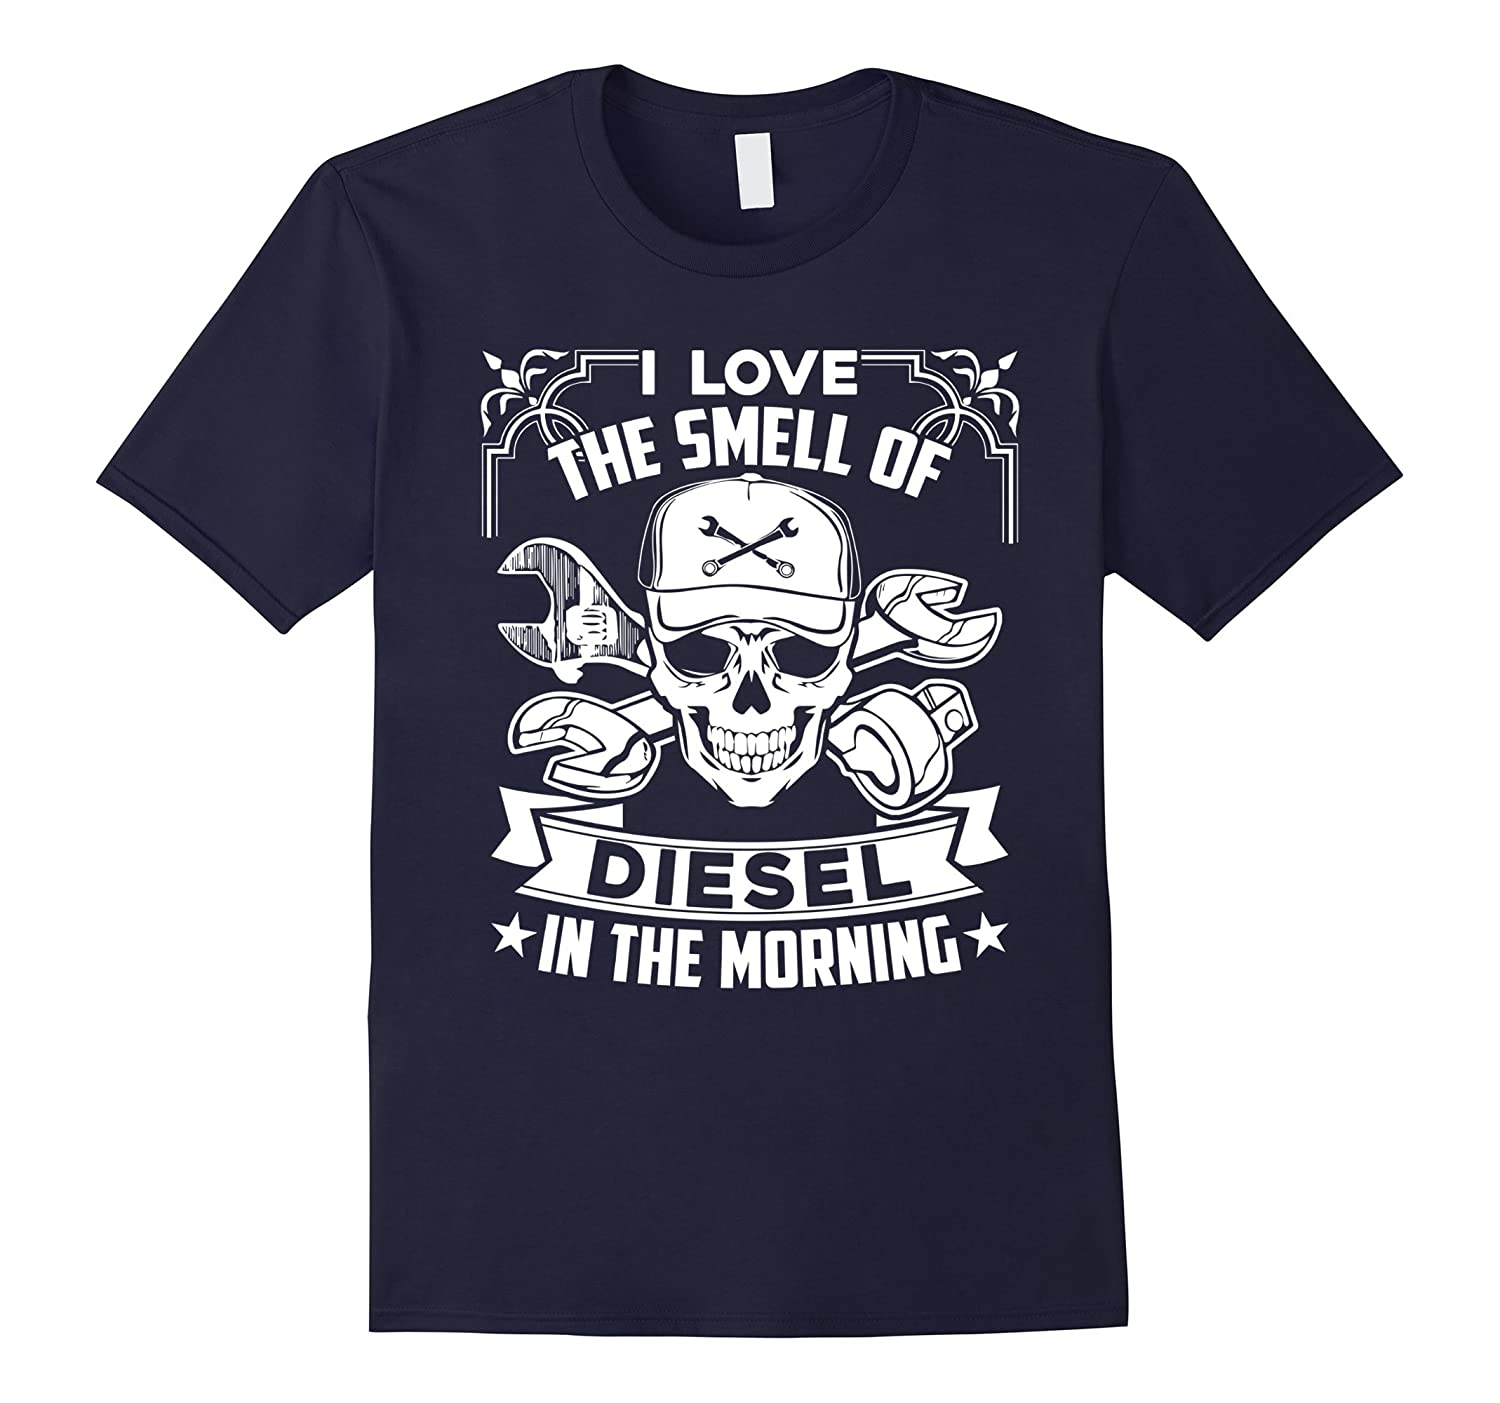 Diesel Mechanic Shirt - I Love Diesel Mechanic Tee Shirt-FL